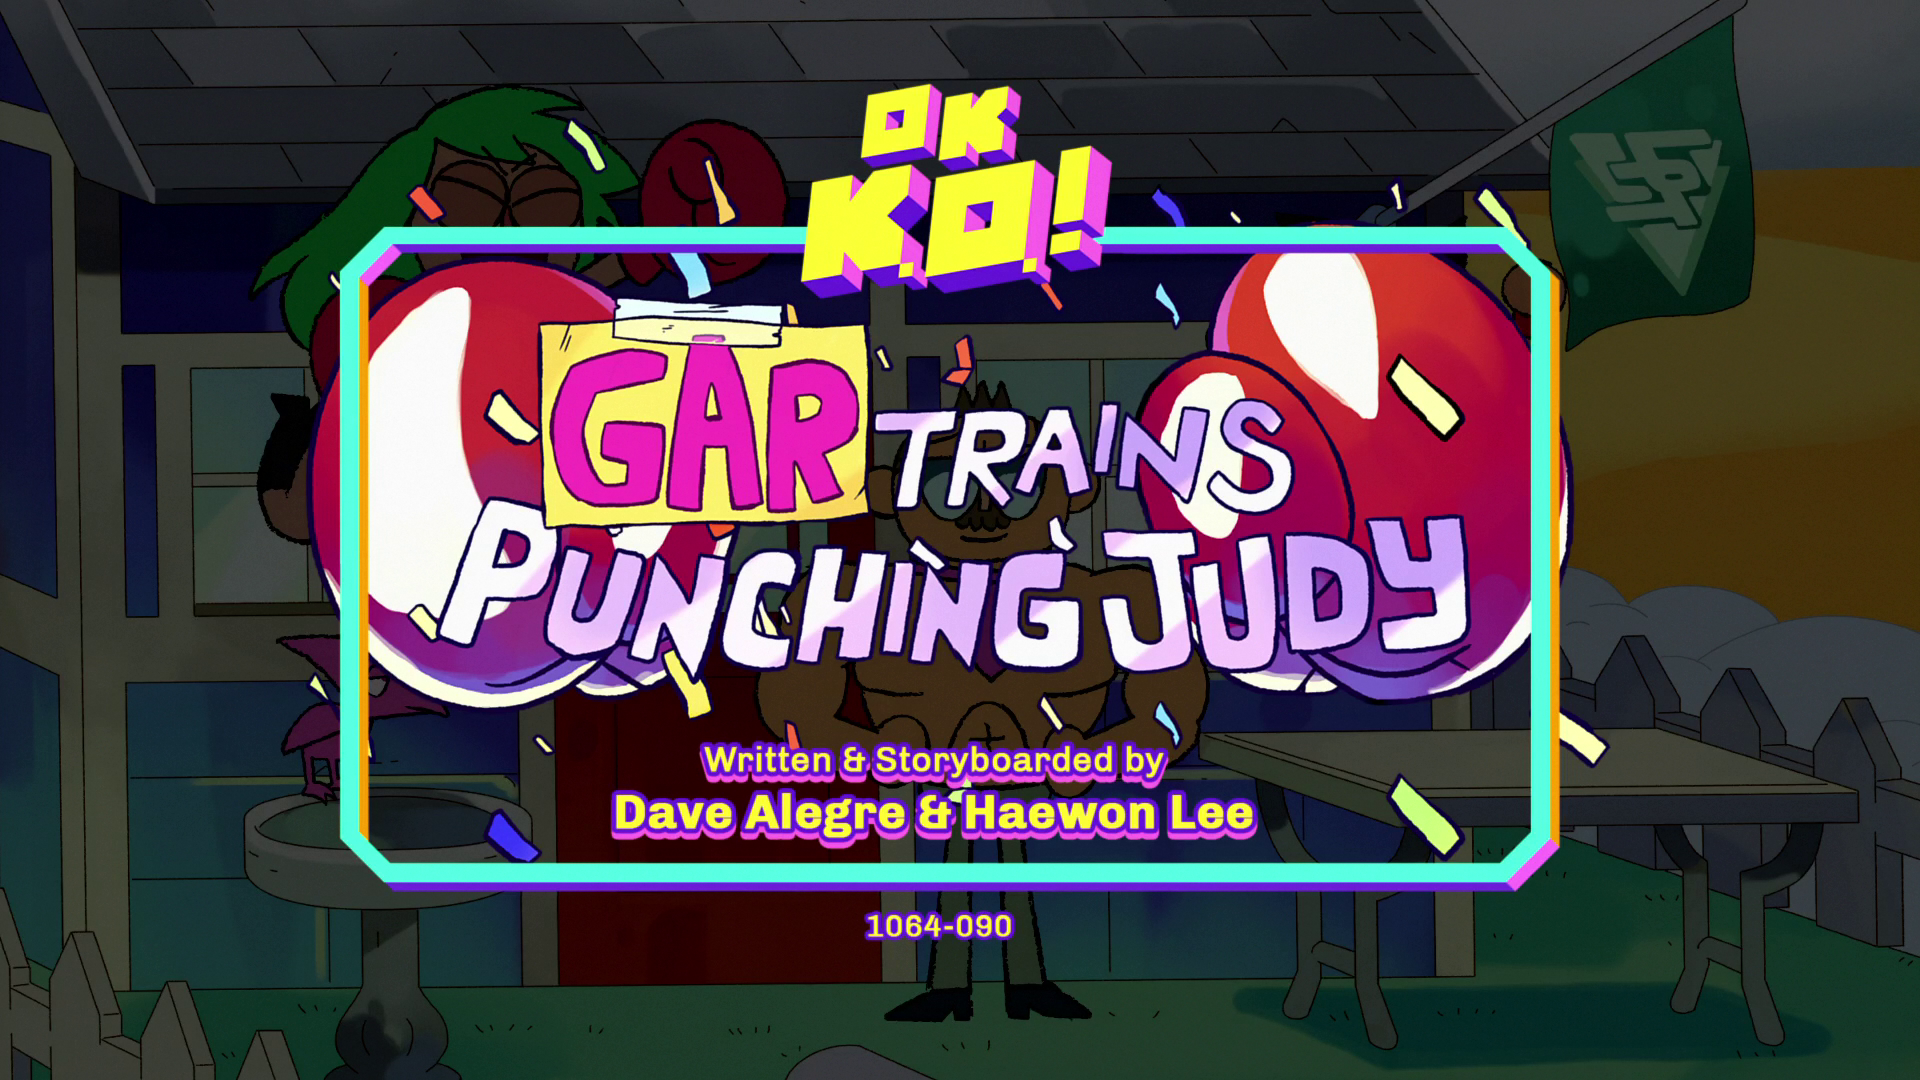 Gar Trains Punching Judy